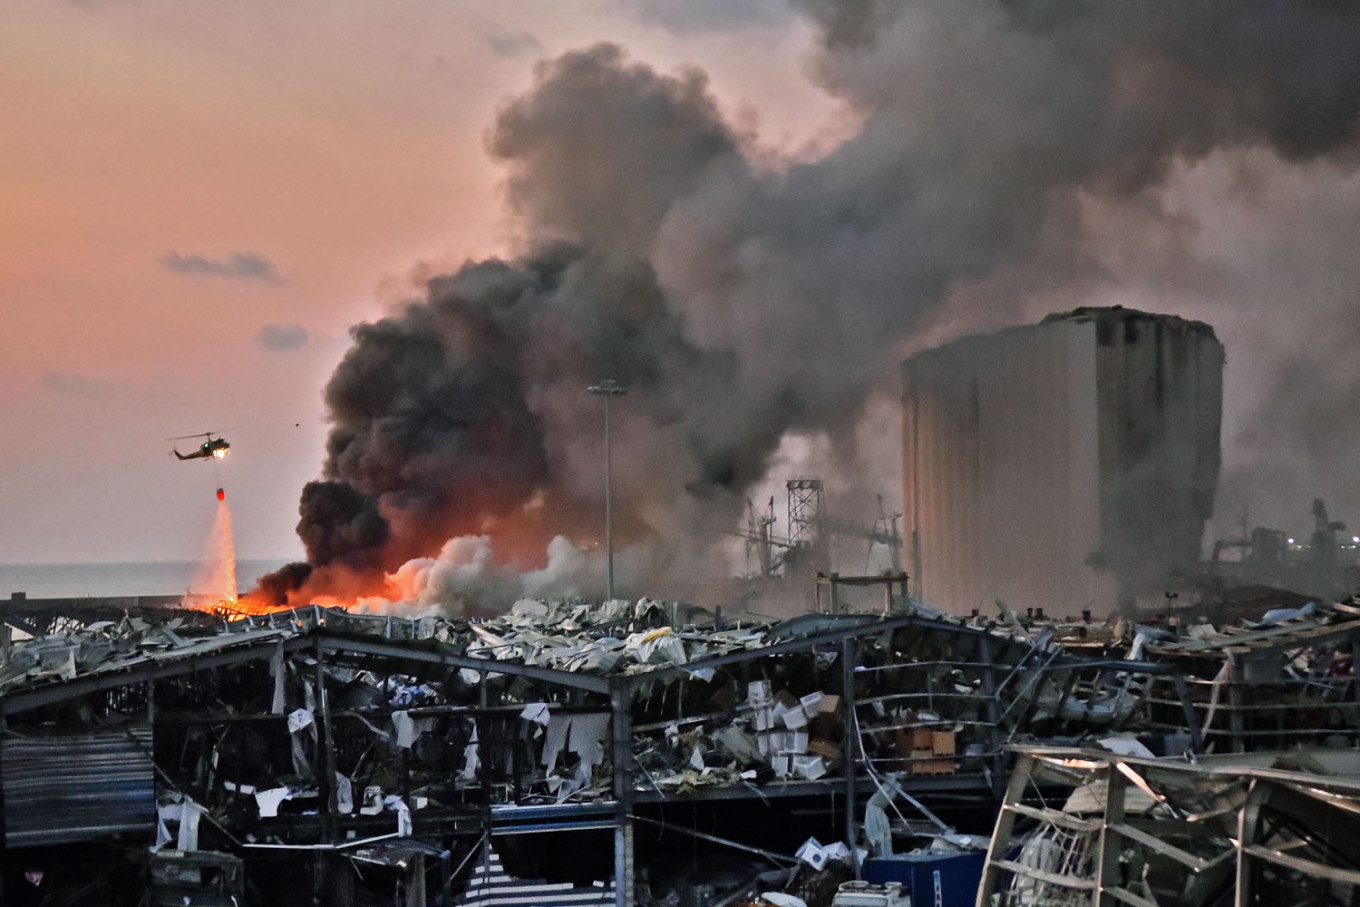 Ammonium nitrate: Fertilizer behind many industrial accidents